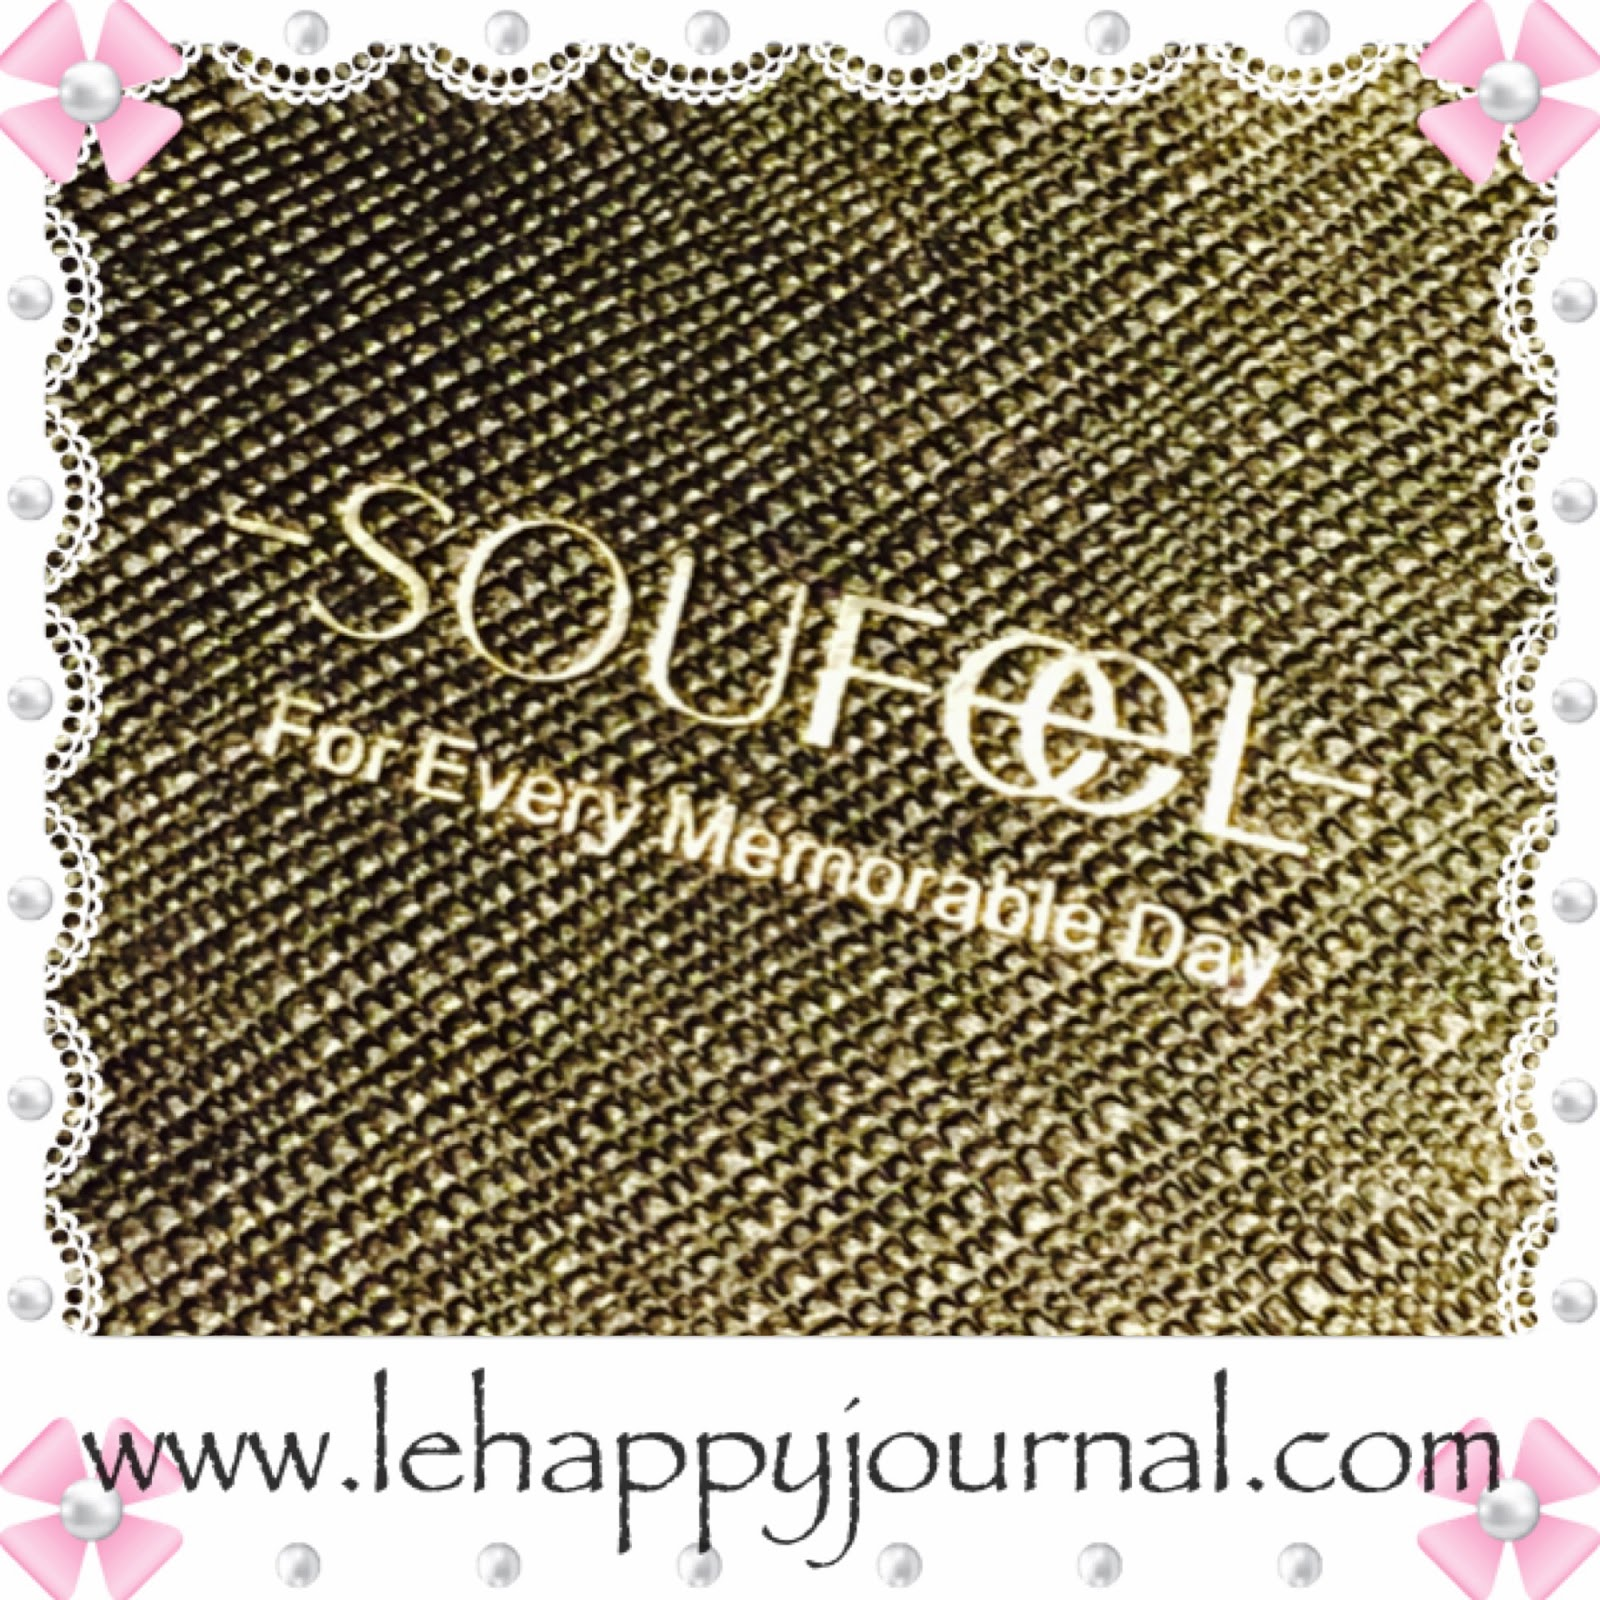 soufeel, bijoux, pas cher, bon plan, chine, charms, pandora, happy journal